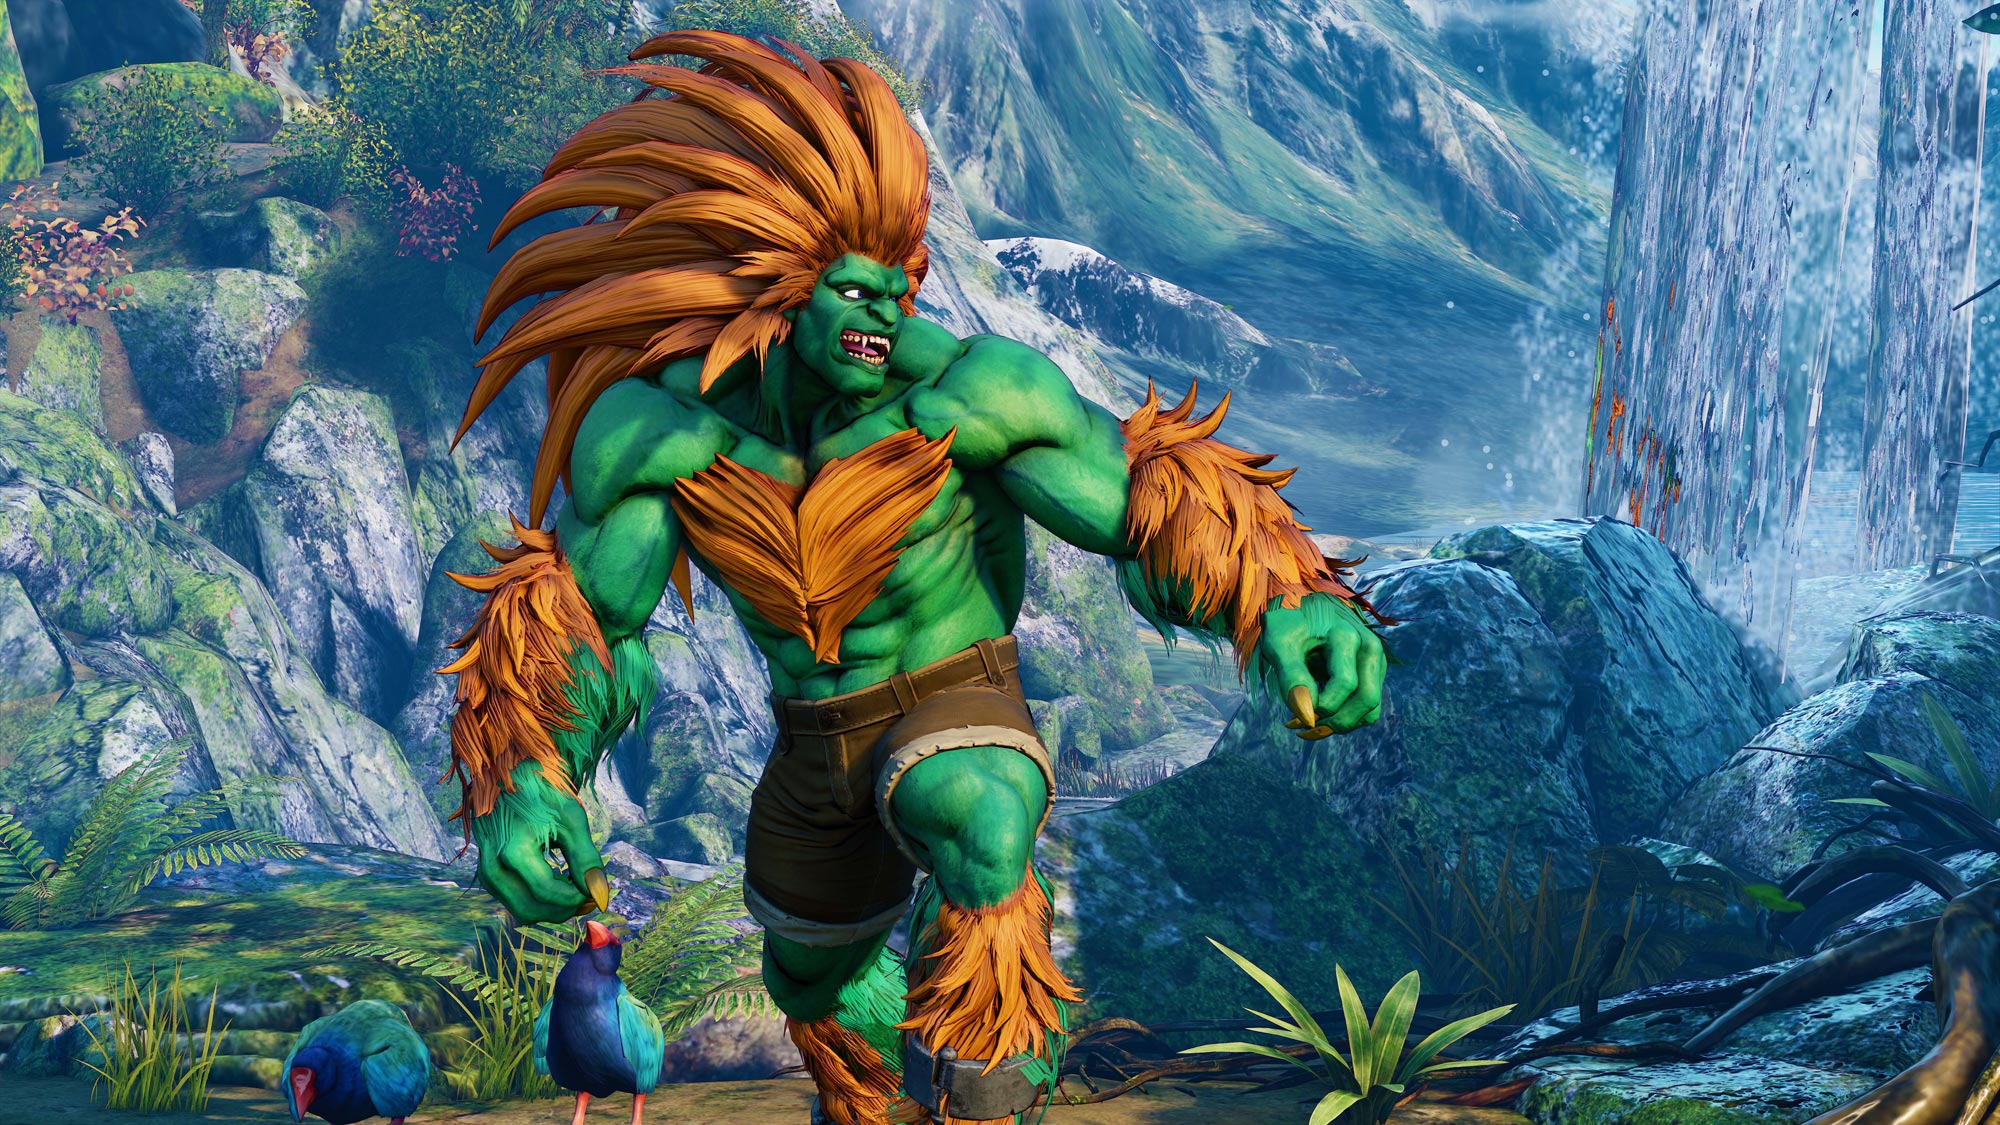 Blanka in Street Fighter 5: Arcade Edition 2 out of 11 image gallery